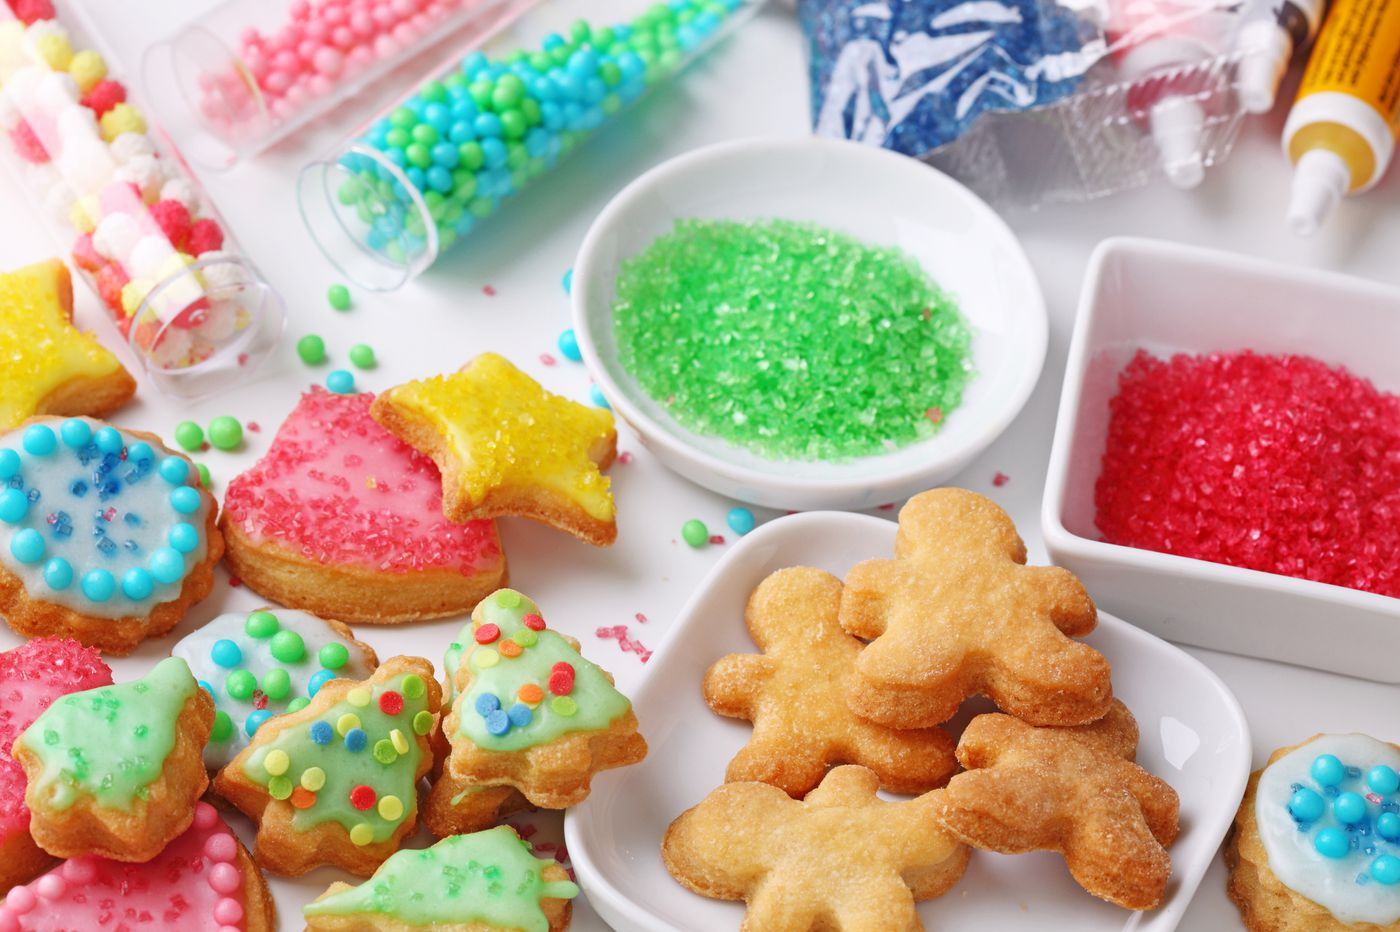 Holiday bakers beware: Not all 'edible' glitter is actually edible